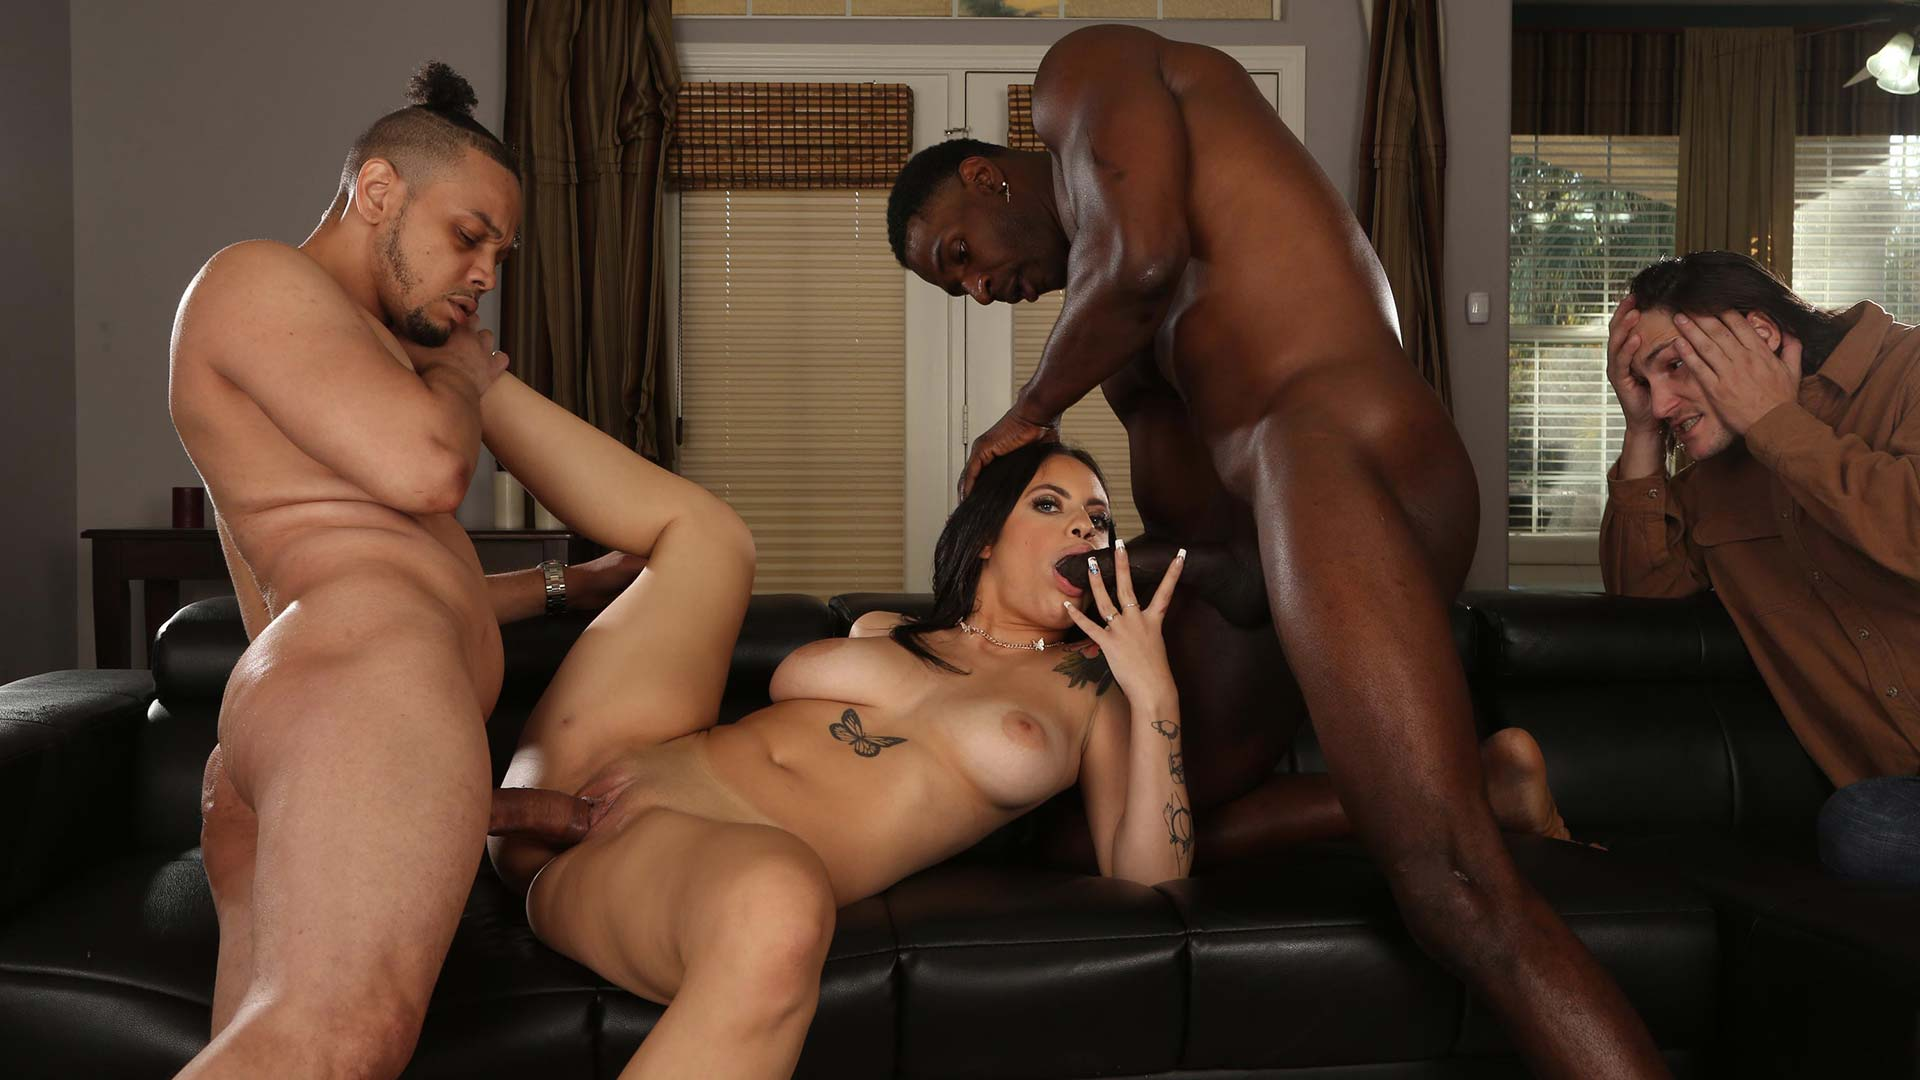 WatchingMyDaughterGoBlack Melody Foxx Interracial Porn